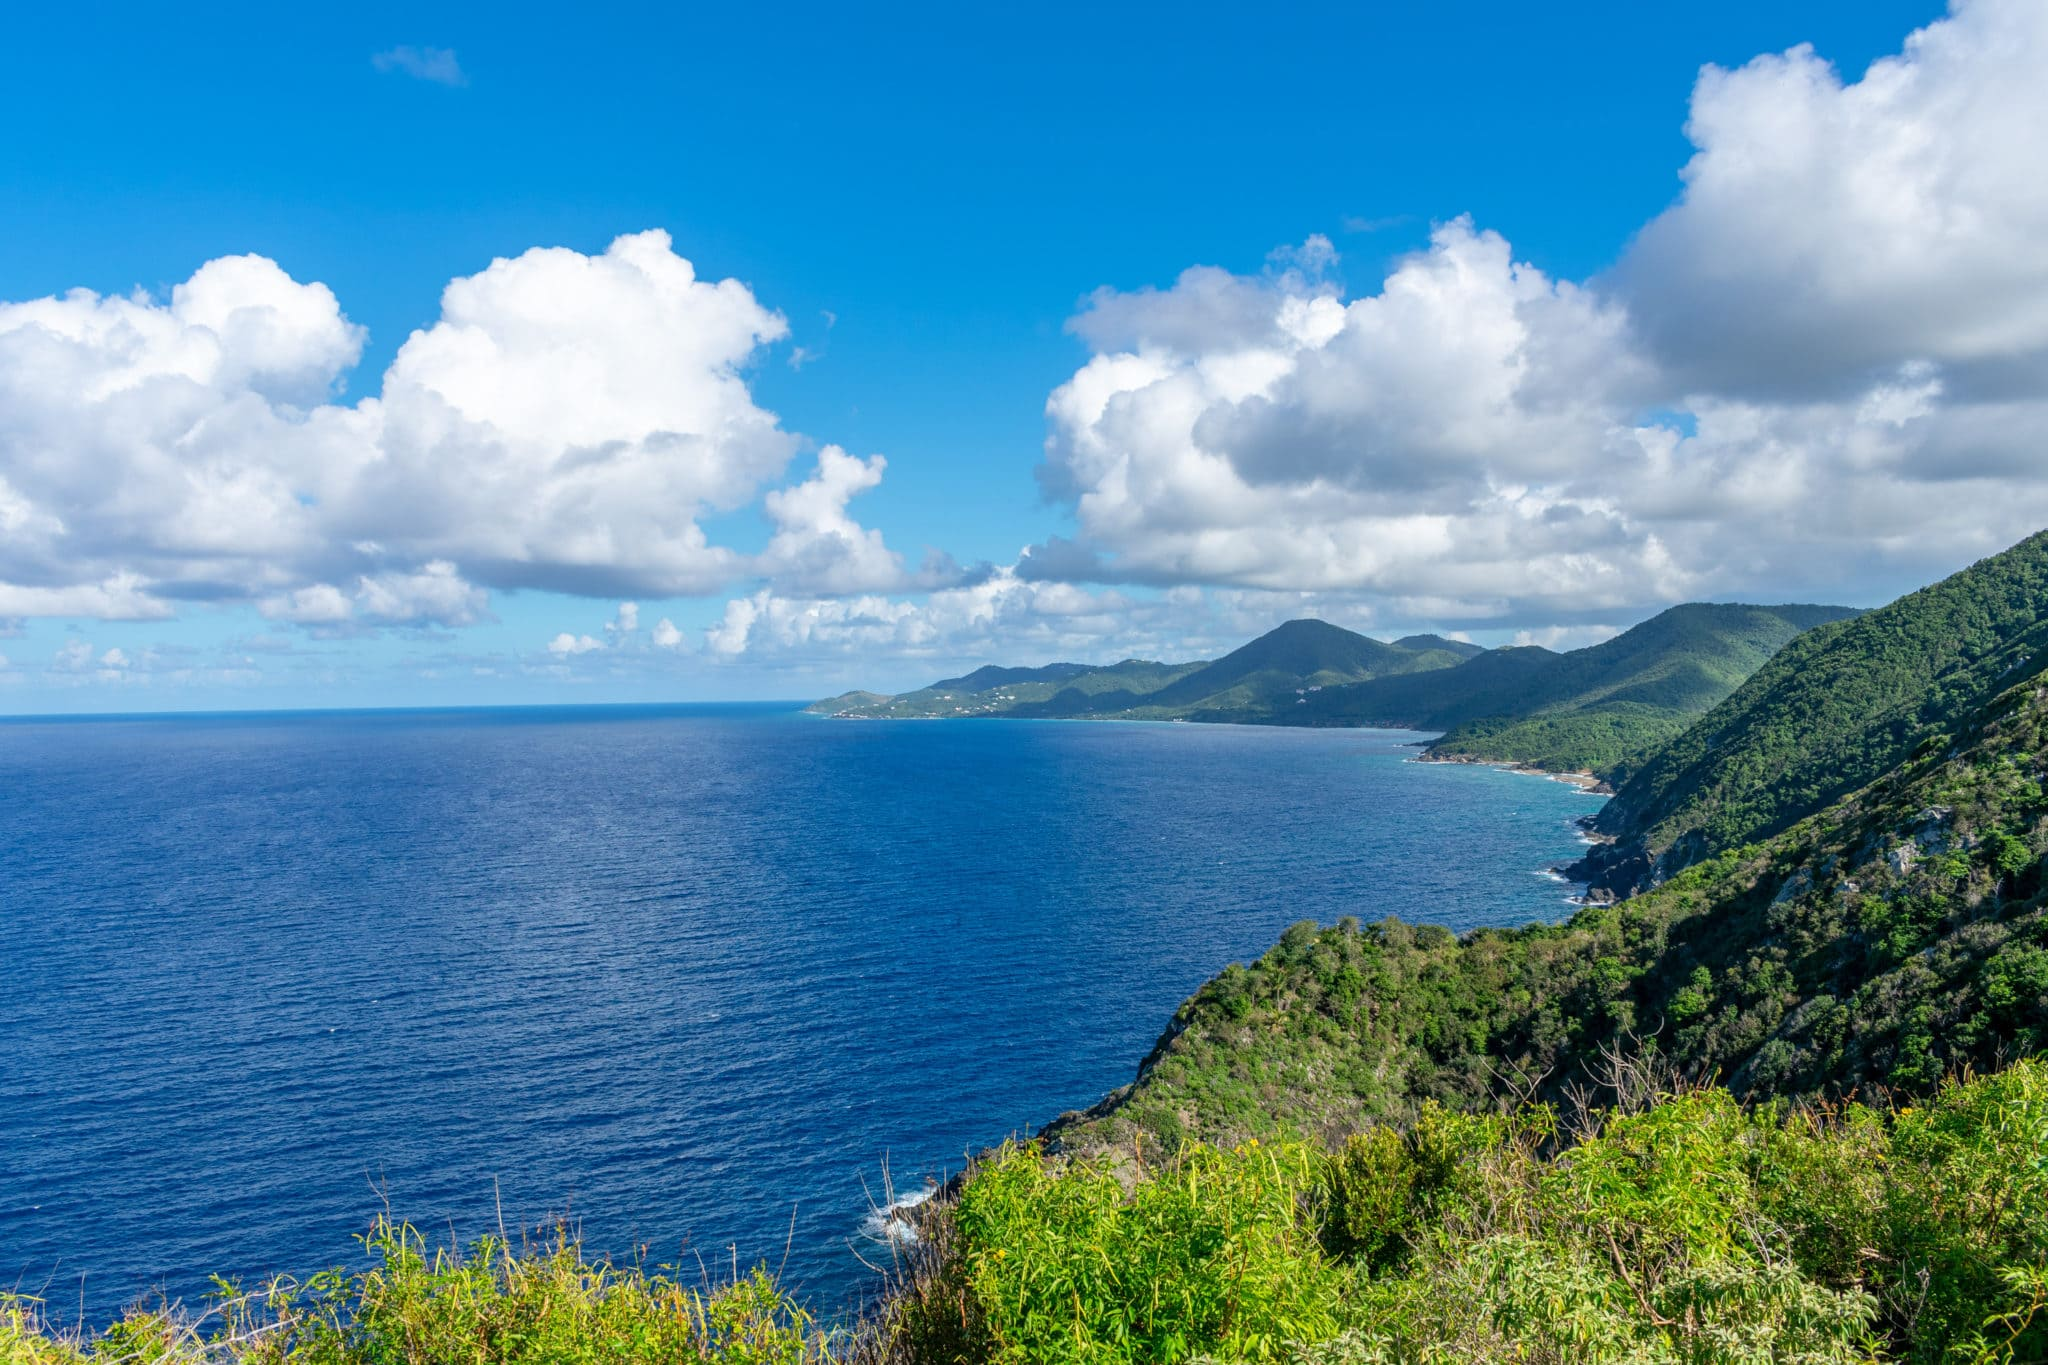 Looking East From Hams Bluff Lighthouse, St. Croix